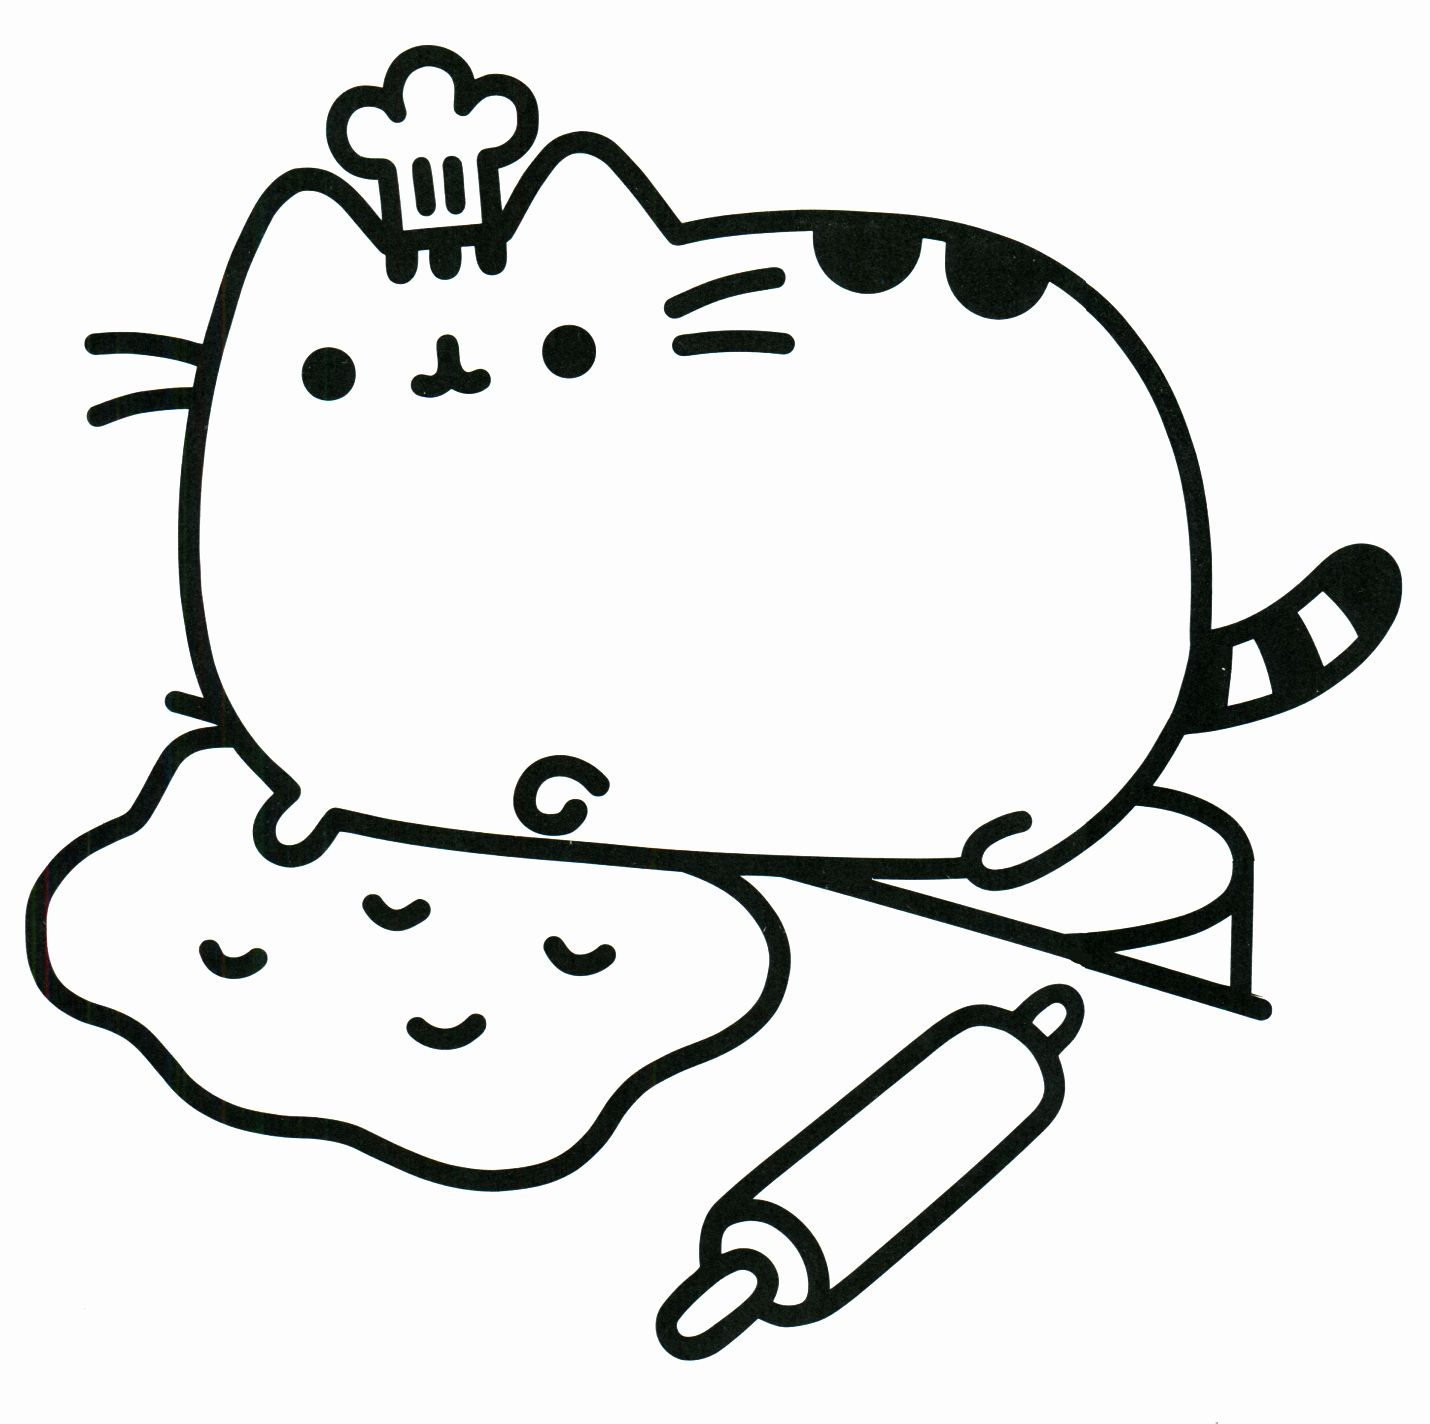 Cute Printable Coloring Pages New Pusheen Coloring Pages Best Coloring Pages For Kids Pusheen Coloring Pages Cat Coloring Page Food Coloring Pages